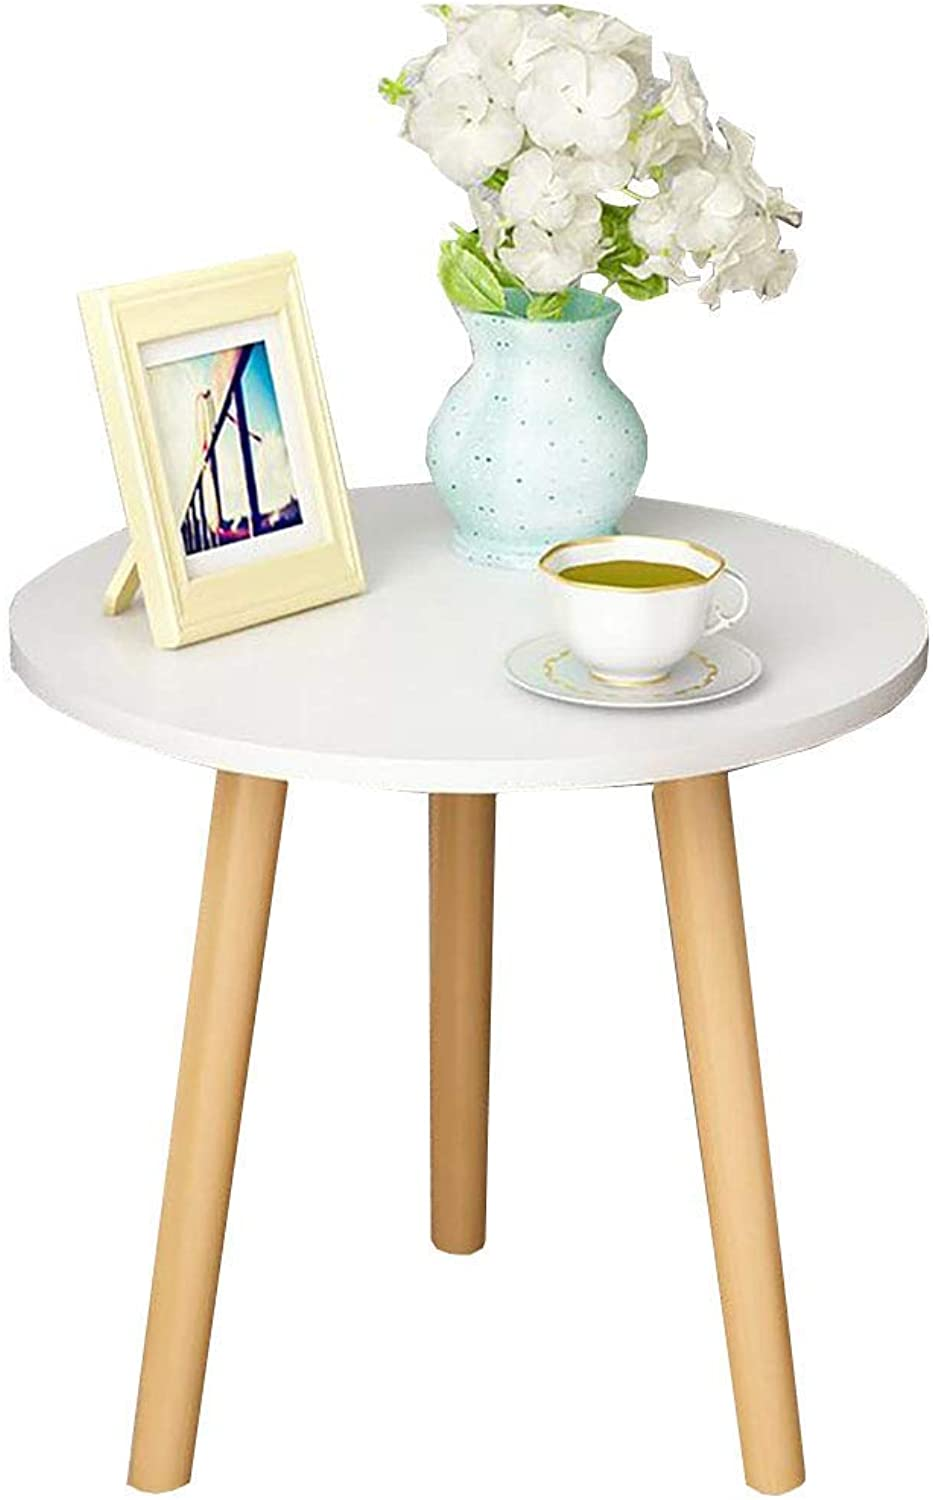 TJTG End Tables Nordic Simple Coffee Table Solid Wood Round Small Side Table Bedroom Mini Bed Table European Sofa Corner Home Office Desk (Size   35CM)